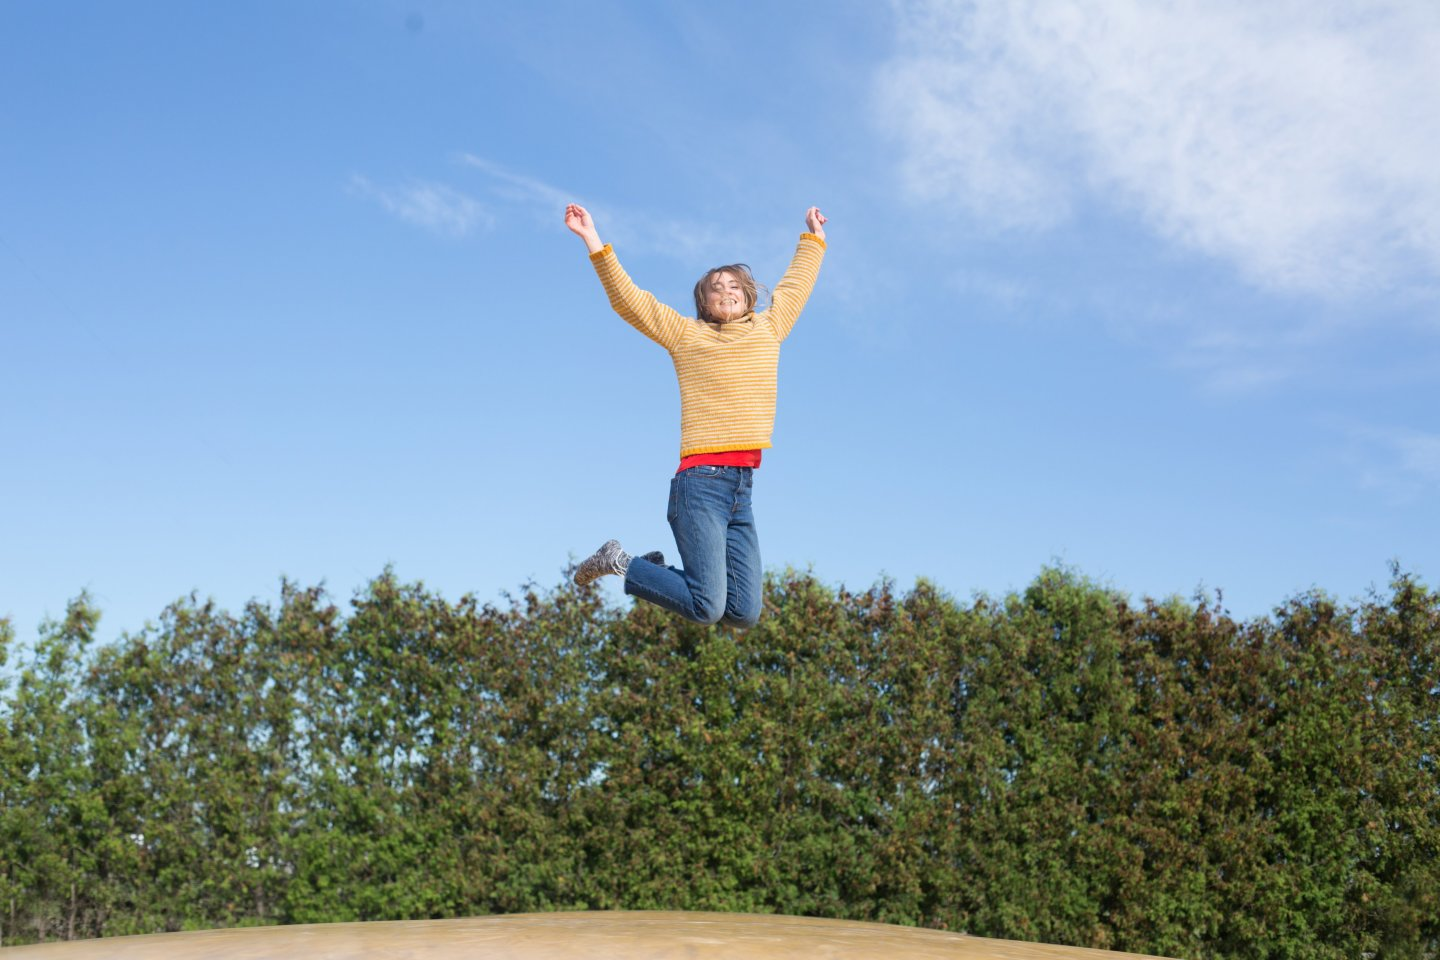 happy-woman-jumps-on-trampoline 4460x4460